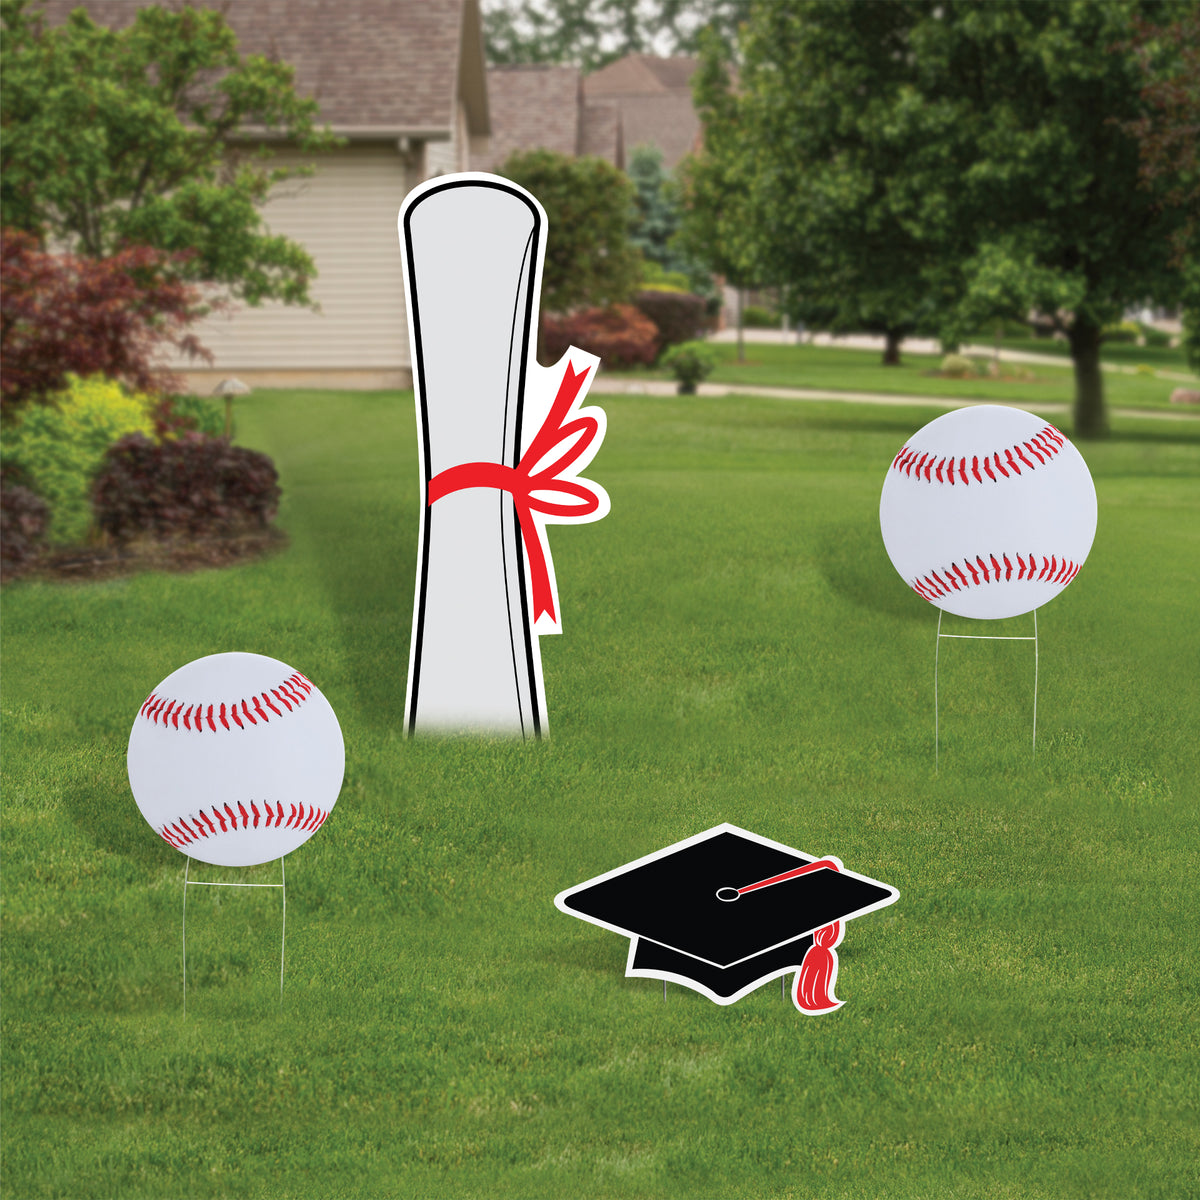 Baseball Graduation Yard Sign Expression Icon Set